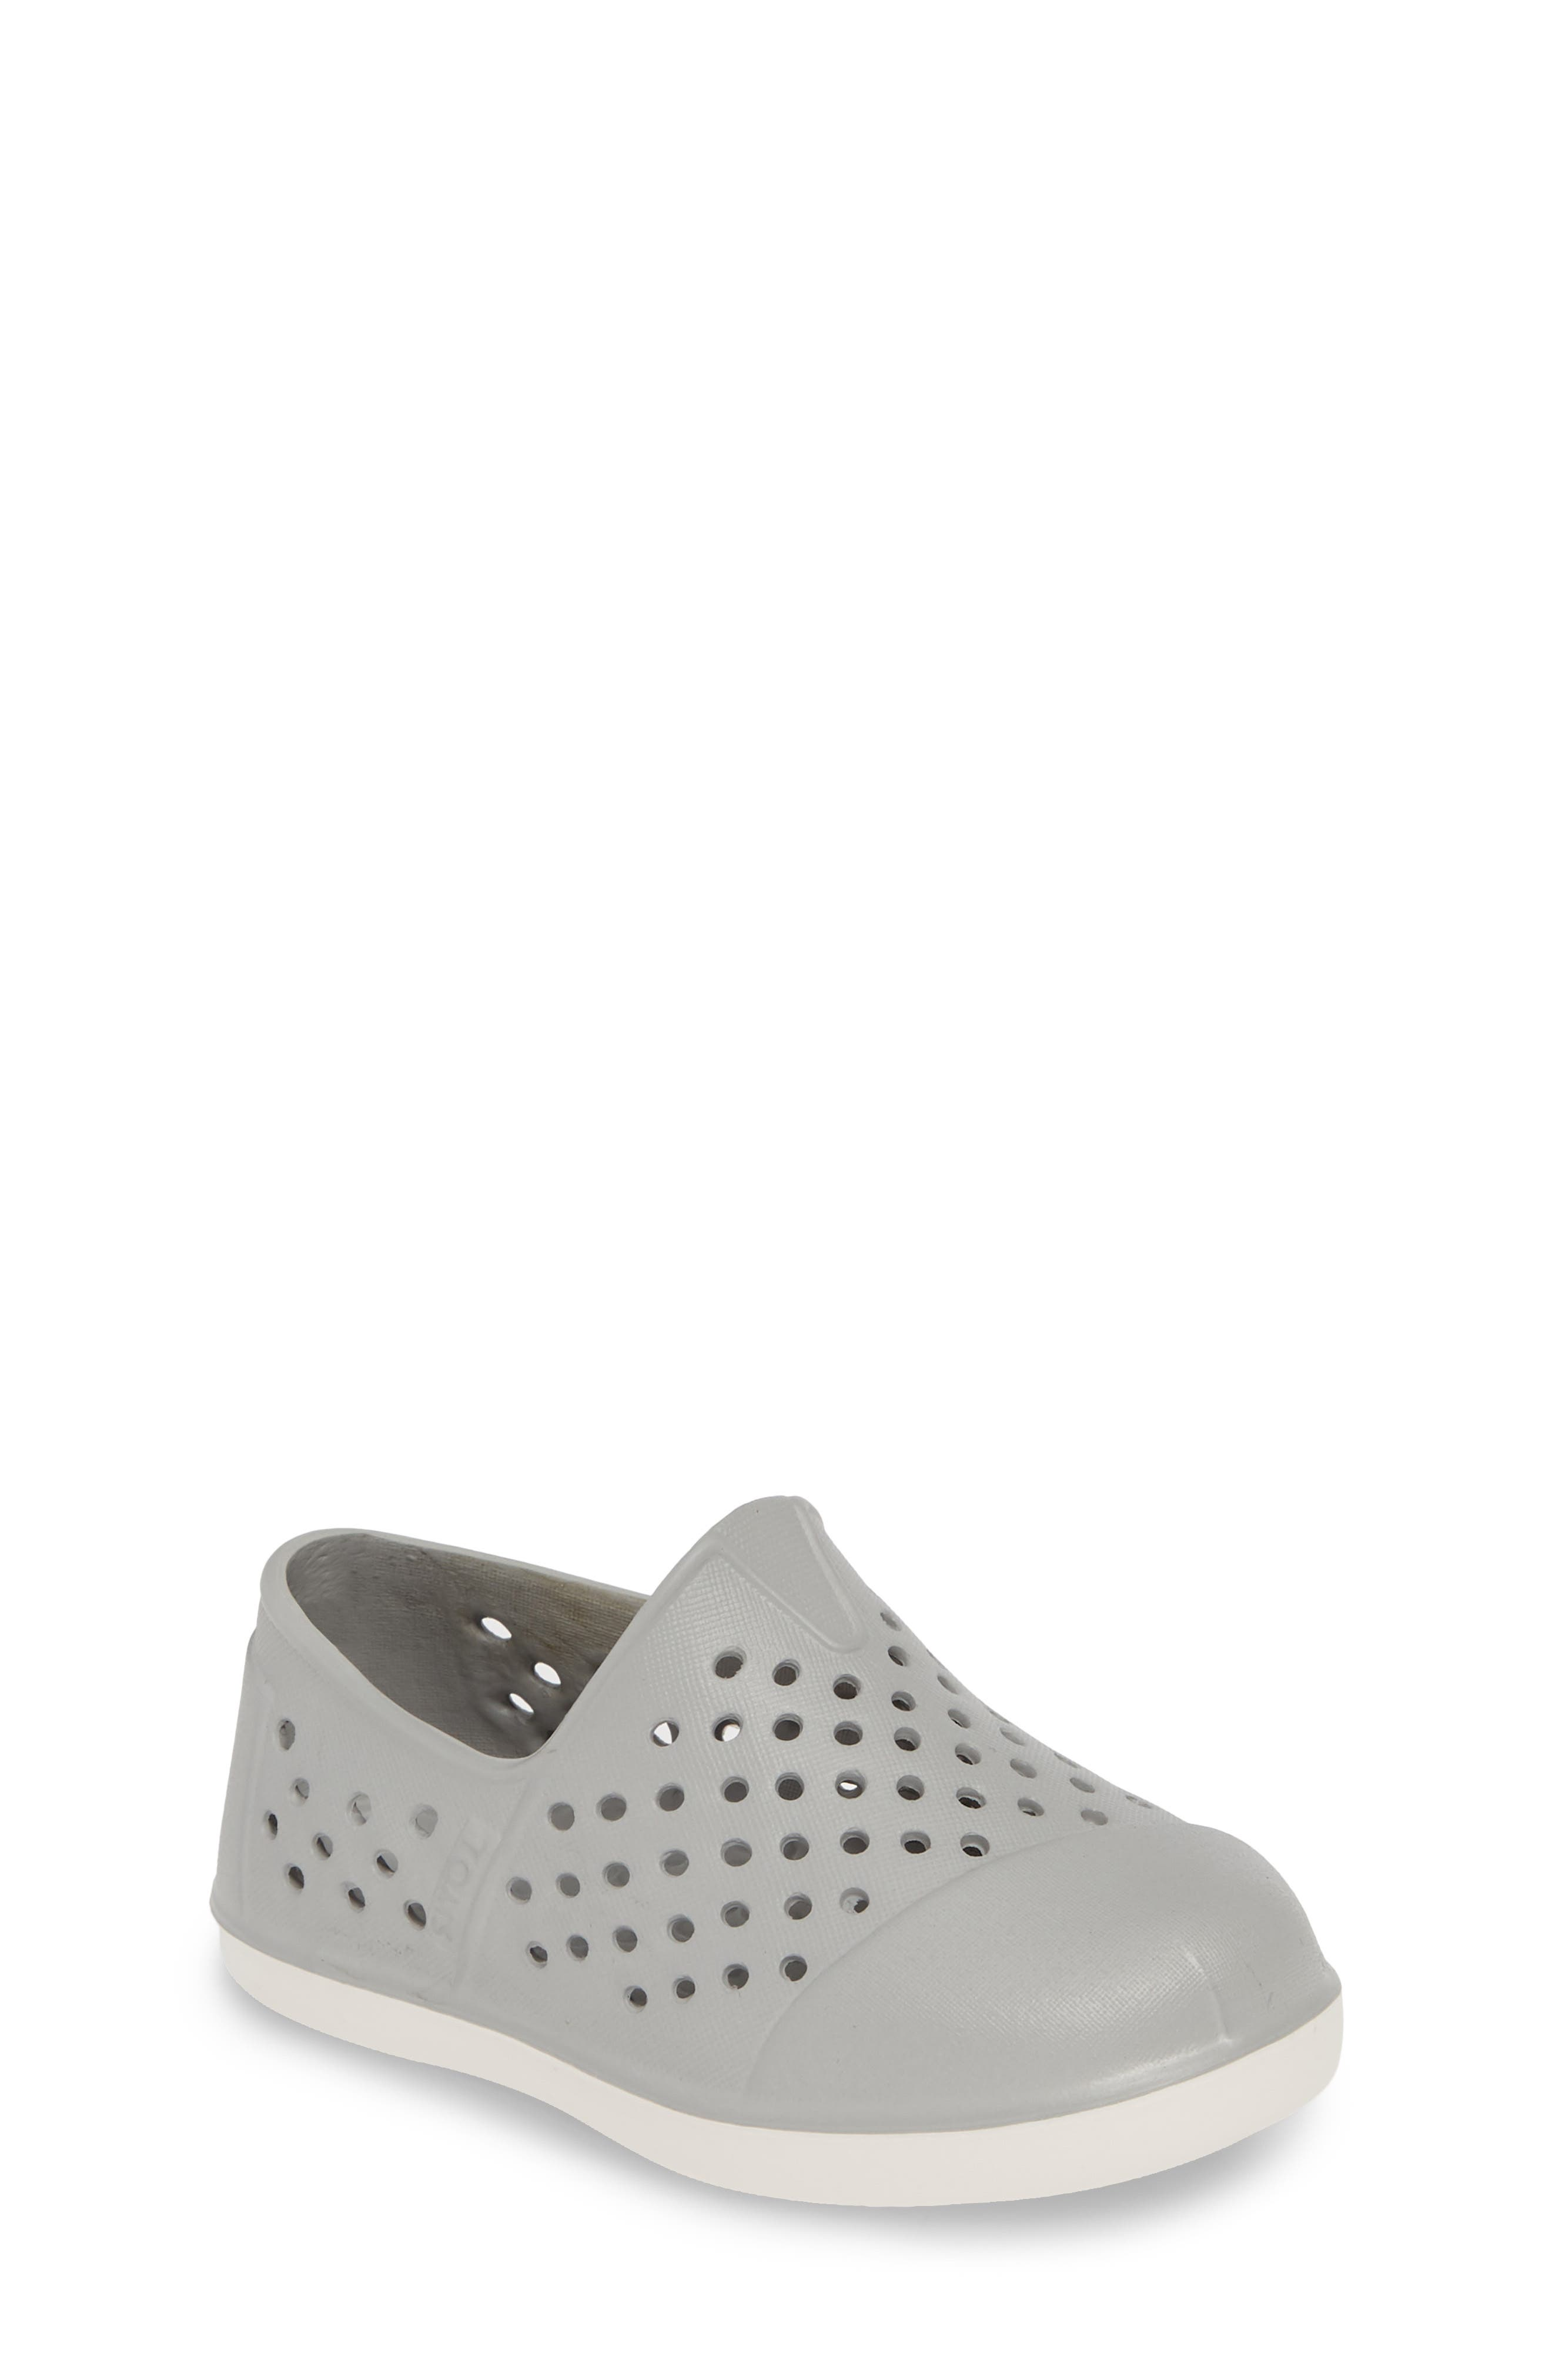 TOMS, 'Romper' Slip-On, Main thumbnail 1, color, GREY